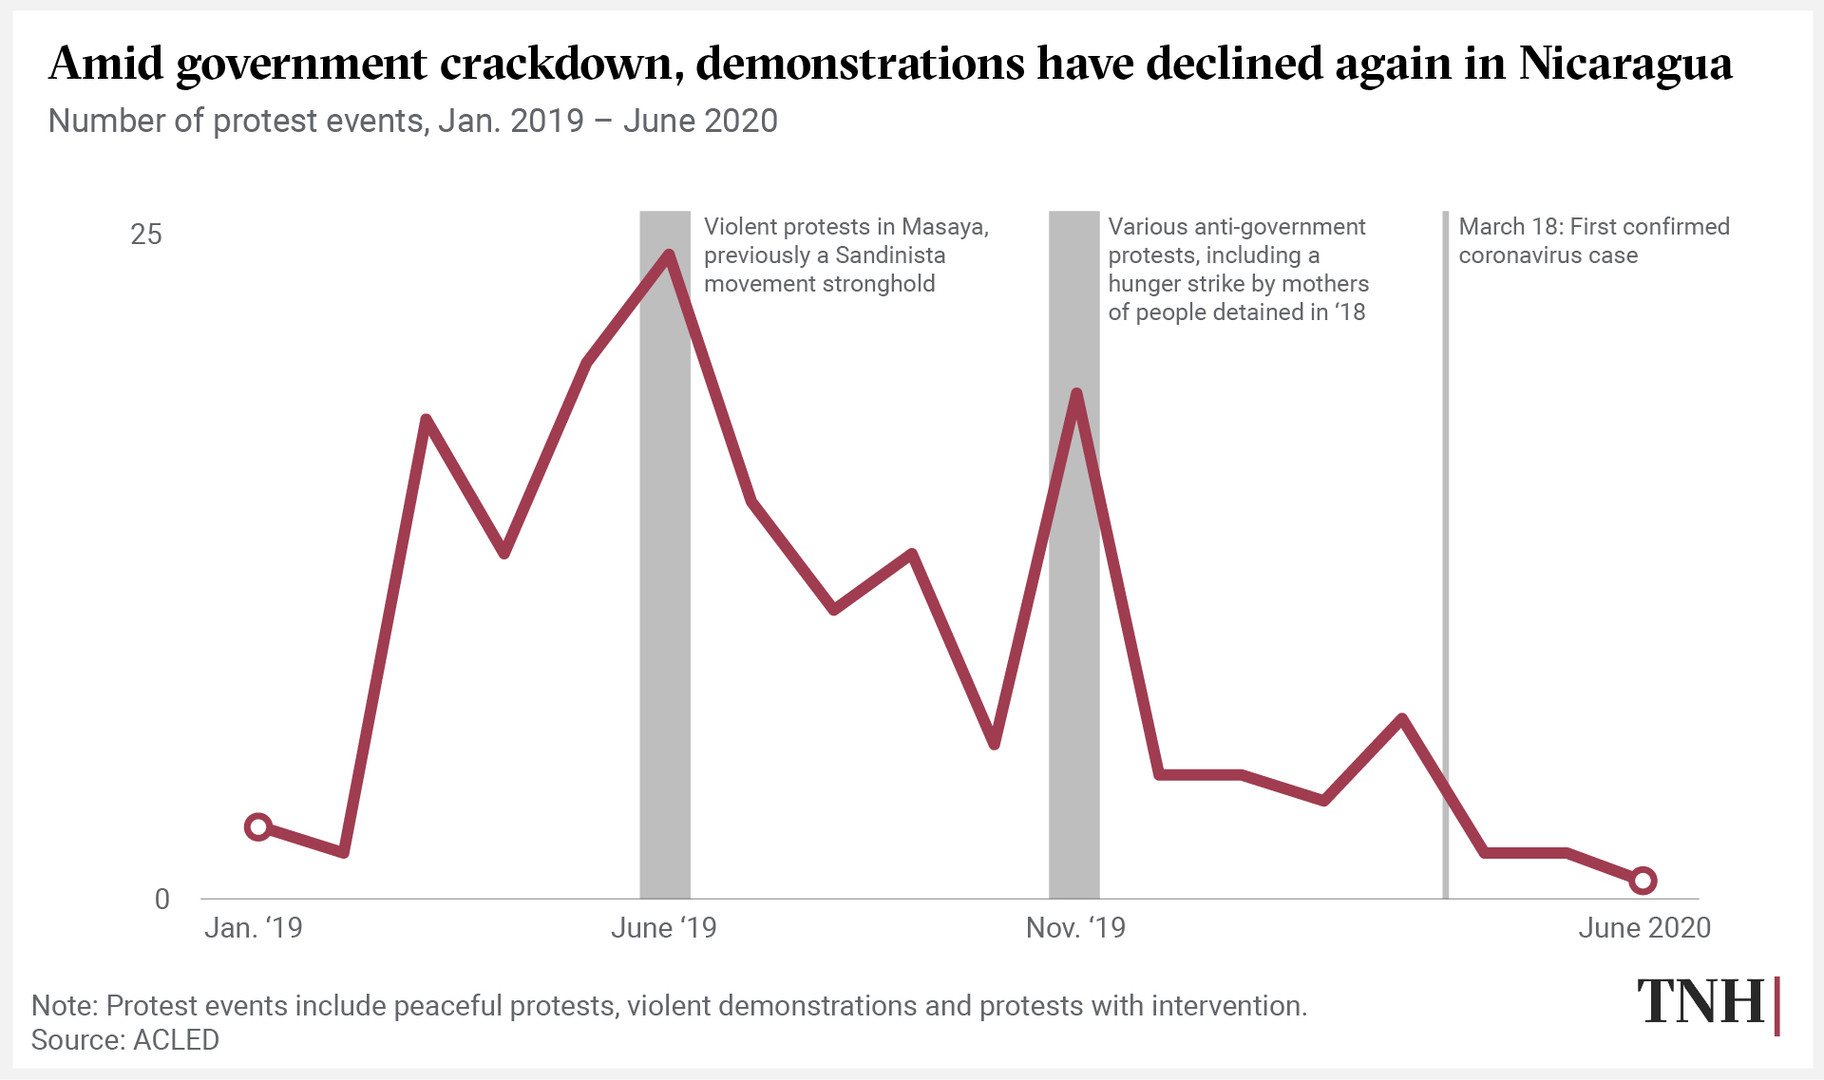 Amid government crackdown, demonstrations have declined again in Nicaragua